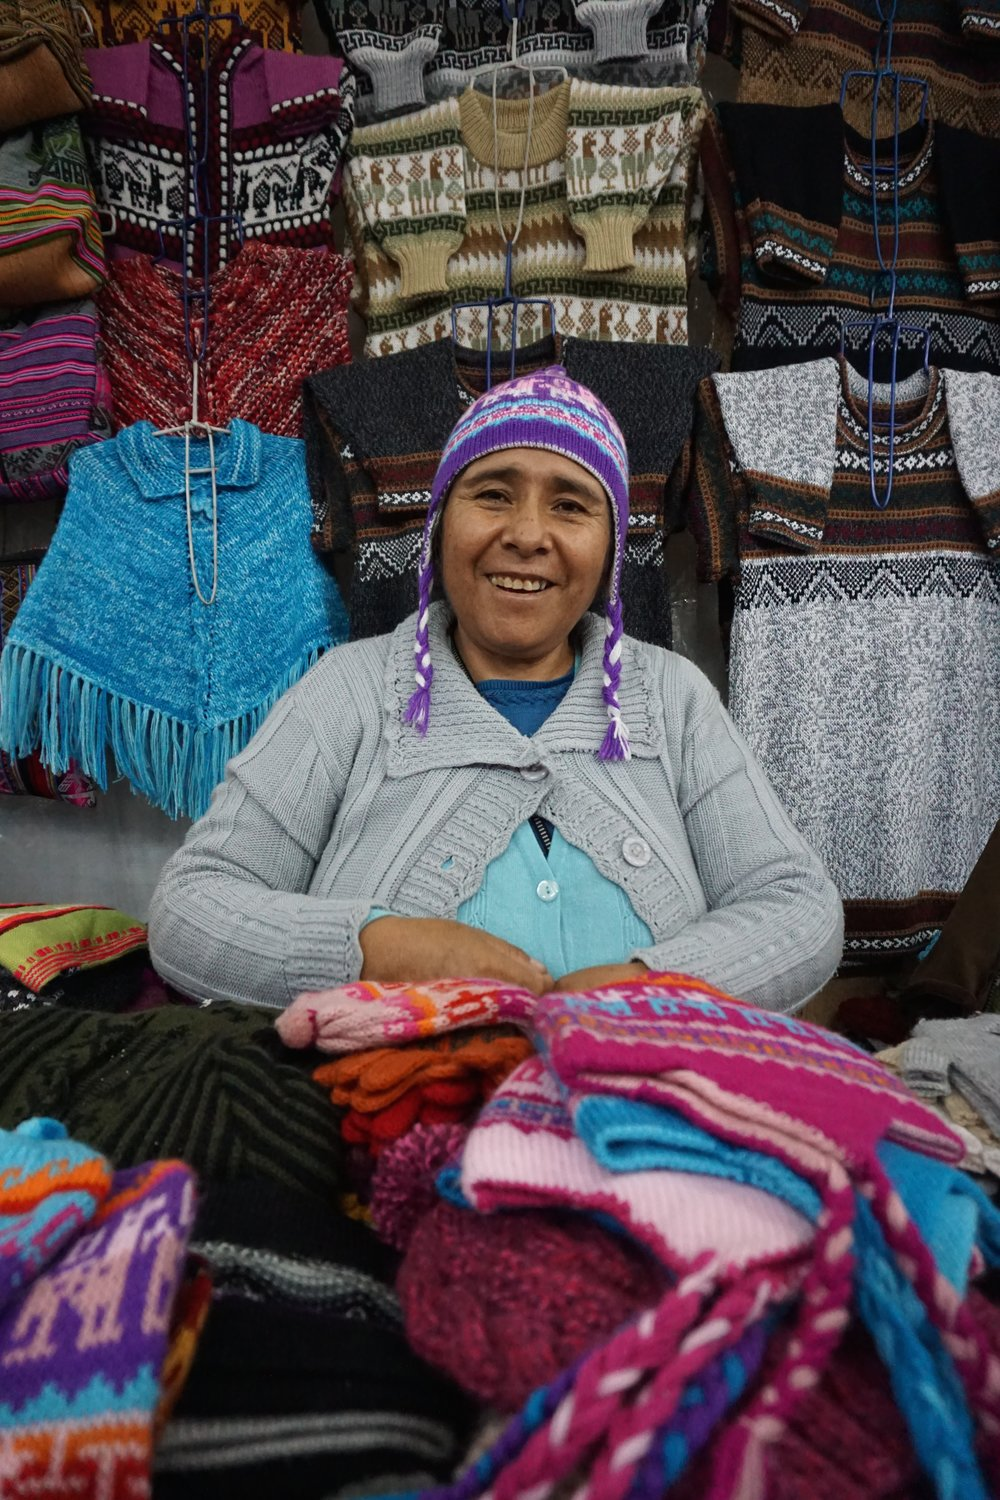 Arequipa is said to be among the best places in Peru to buy hand-made alpaca wool items. We visited an artisan market and stocked up on gifts for family. We bought a couple of hats from this friendly vendor.